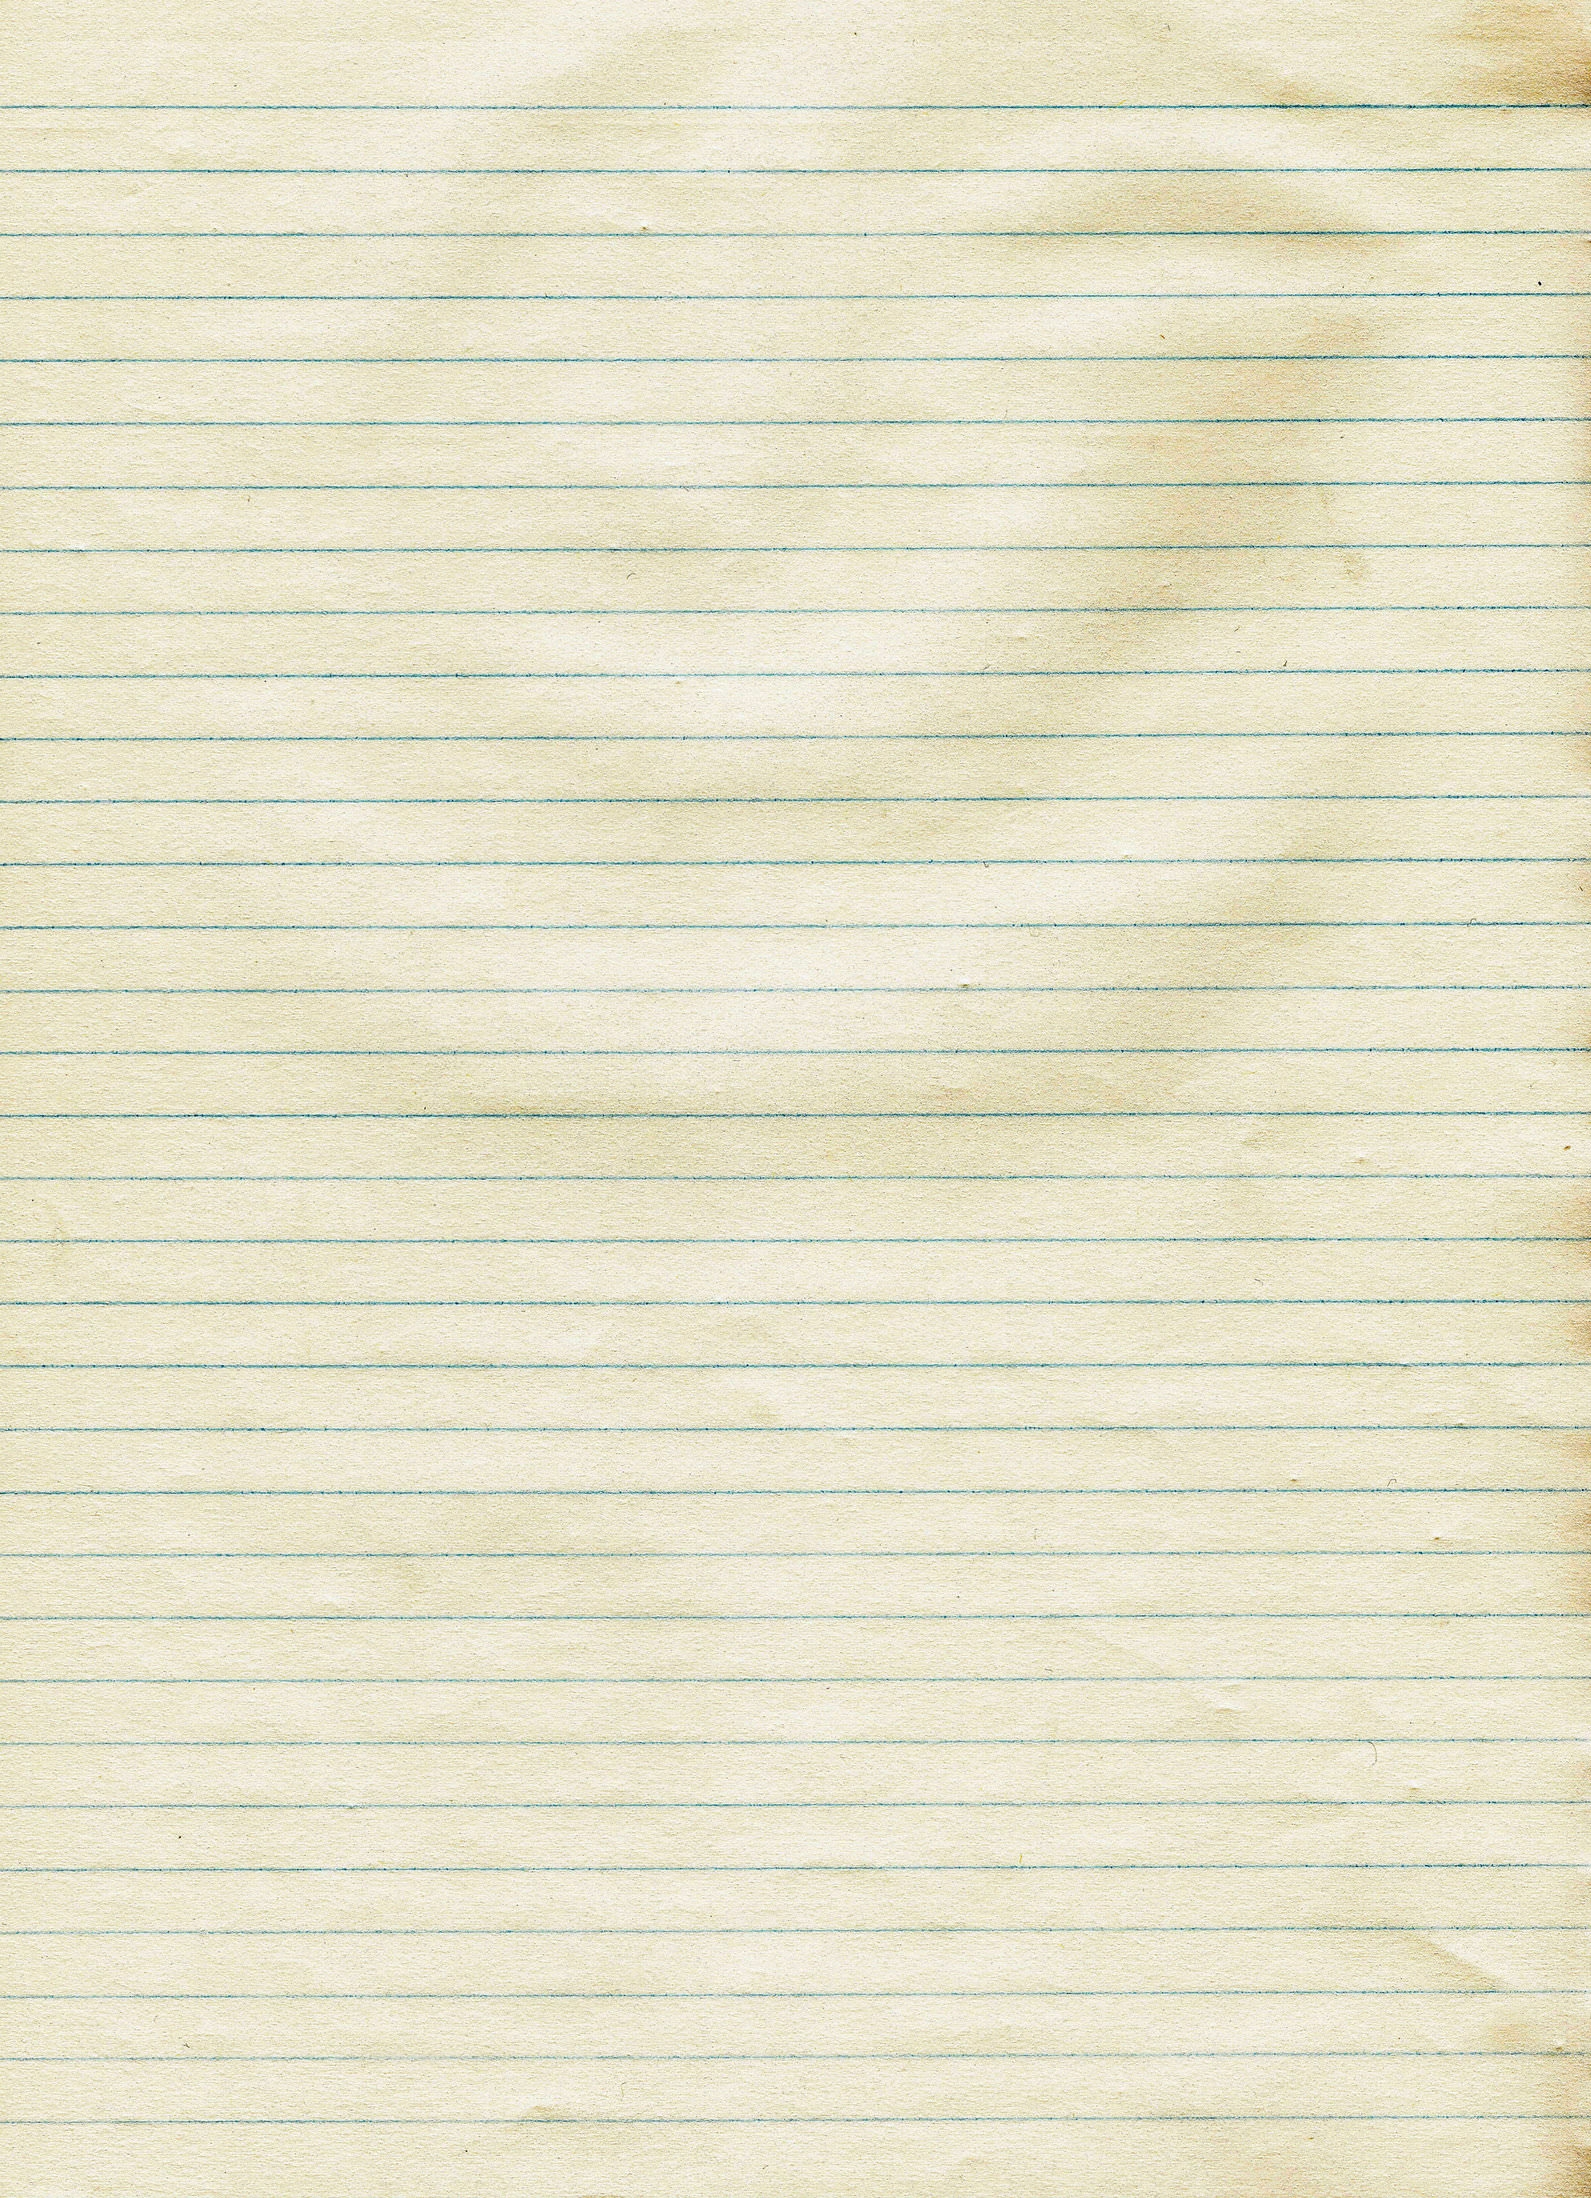 Line Texture Background : Lined paper backgrounds wallpapers freecreatives